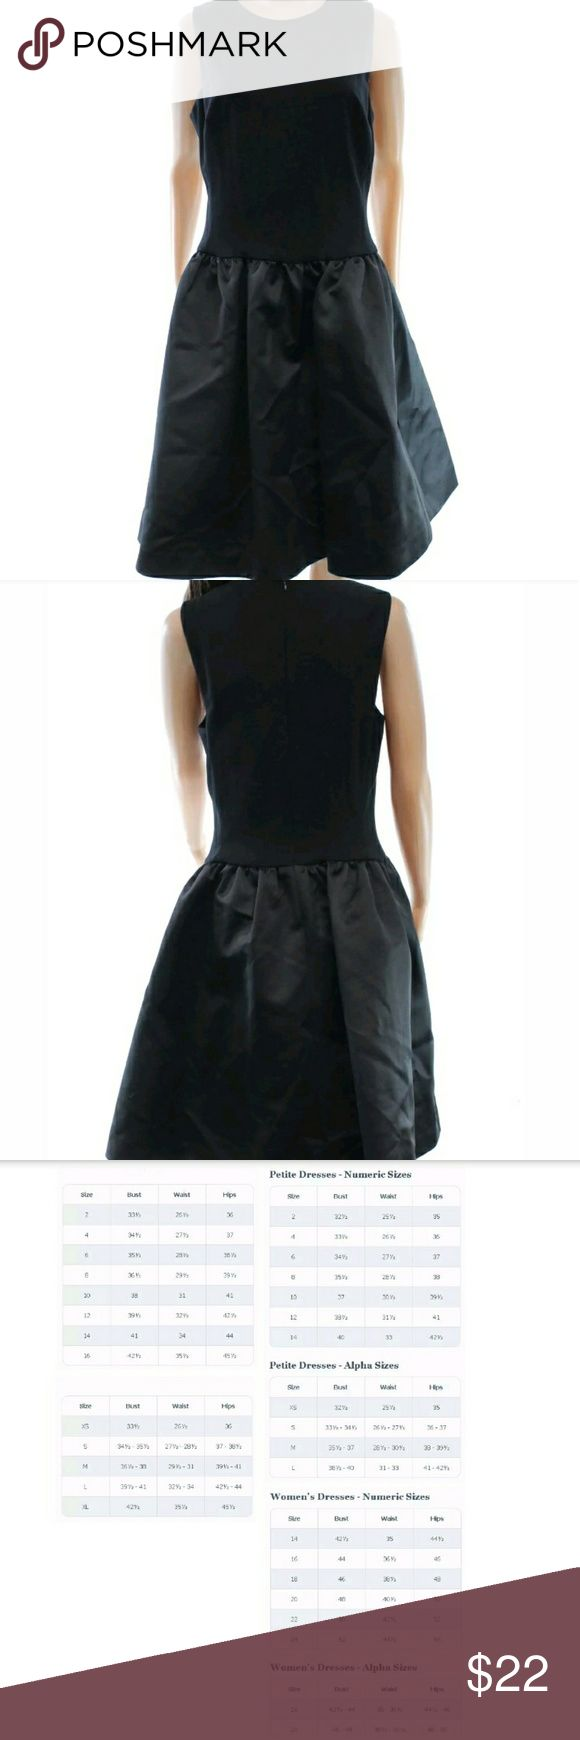 RALPH LAUREN  BLACK WOMEN'S DRESS SIZE 18 PLUS LAUREN RALPH LAUREN NEW BLACK WOMEN'S SIZE 18 PLUS SATIN-SKIRT DRESS  Check the pictures for measurements.   RETAIL PRICE  $198.00  Brand:Lauren Ralph Lauren Condition:New with tags   Category:Dresses  Color: Blacks Size Type: Plus Size (Women's): 18 Lined: Yes Sleeve Style: Sleeveless Occasion: Cocktail Style: Sheath Dress Length: Above Knee, Mini Material: 100% Polyester Zipper: Back Zipper Ralph Lauren Dresses High Low